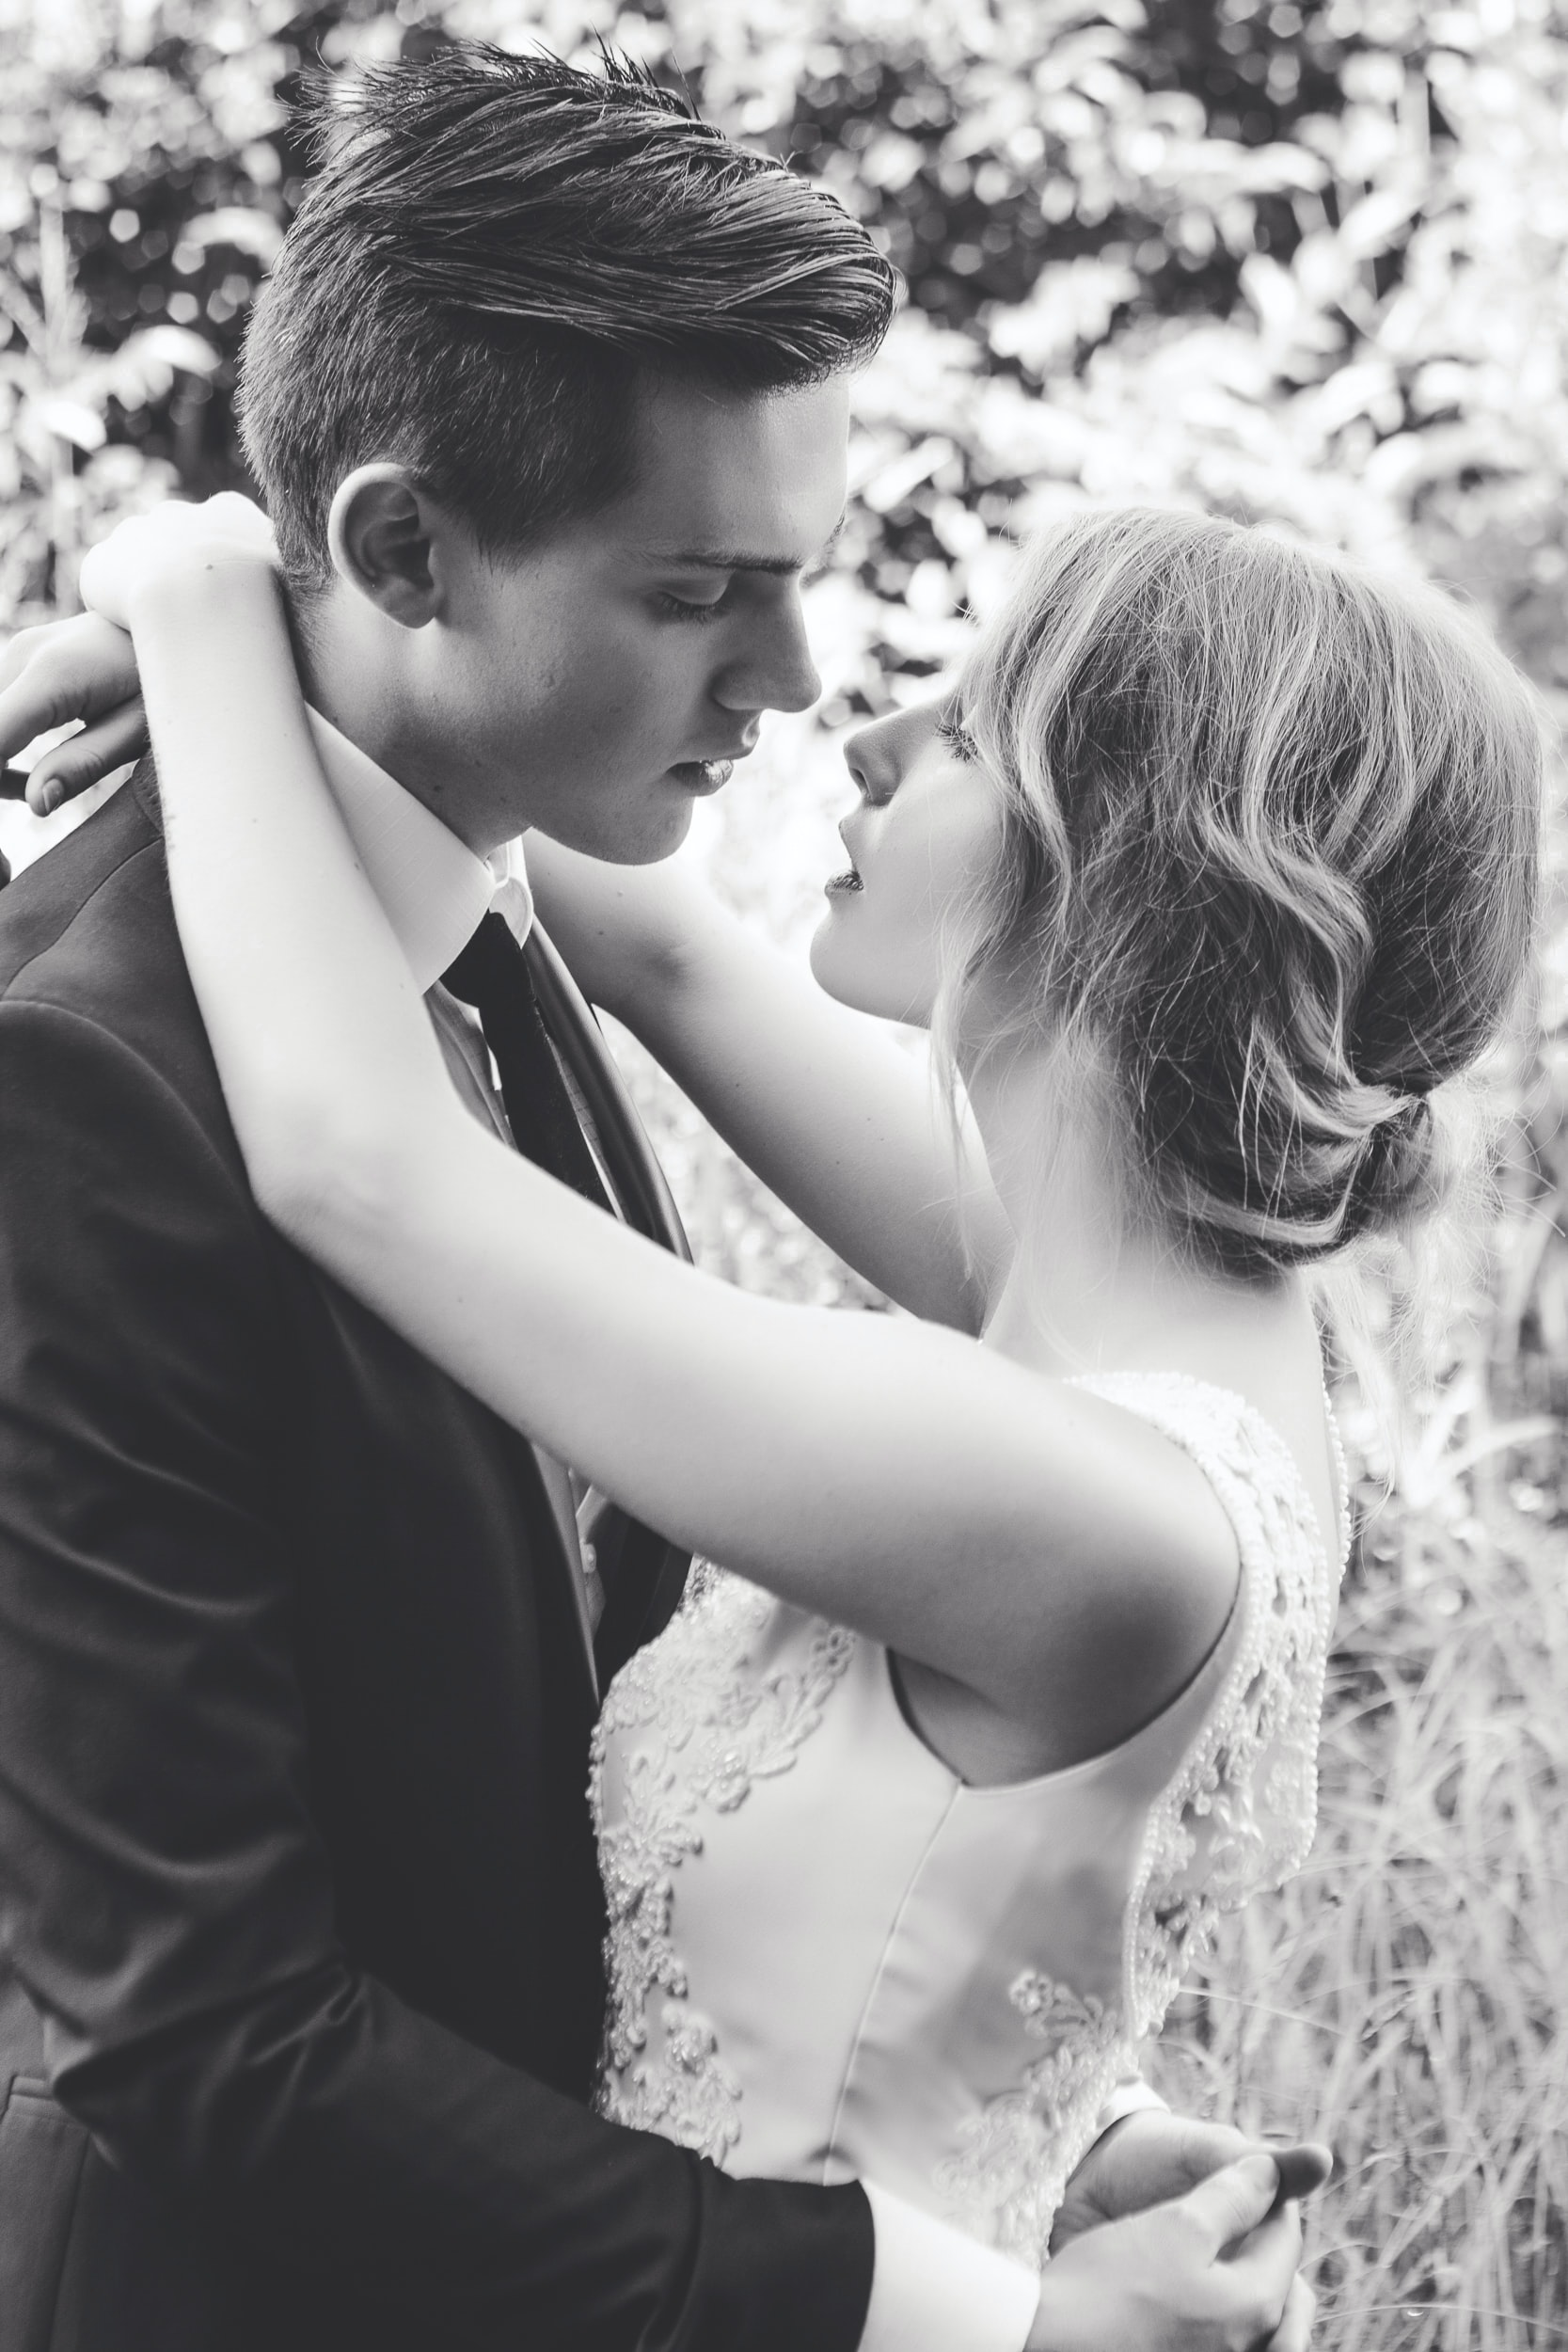 A bride and groom hugging and about to kiss.